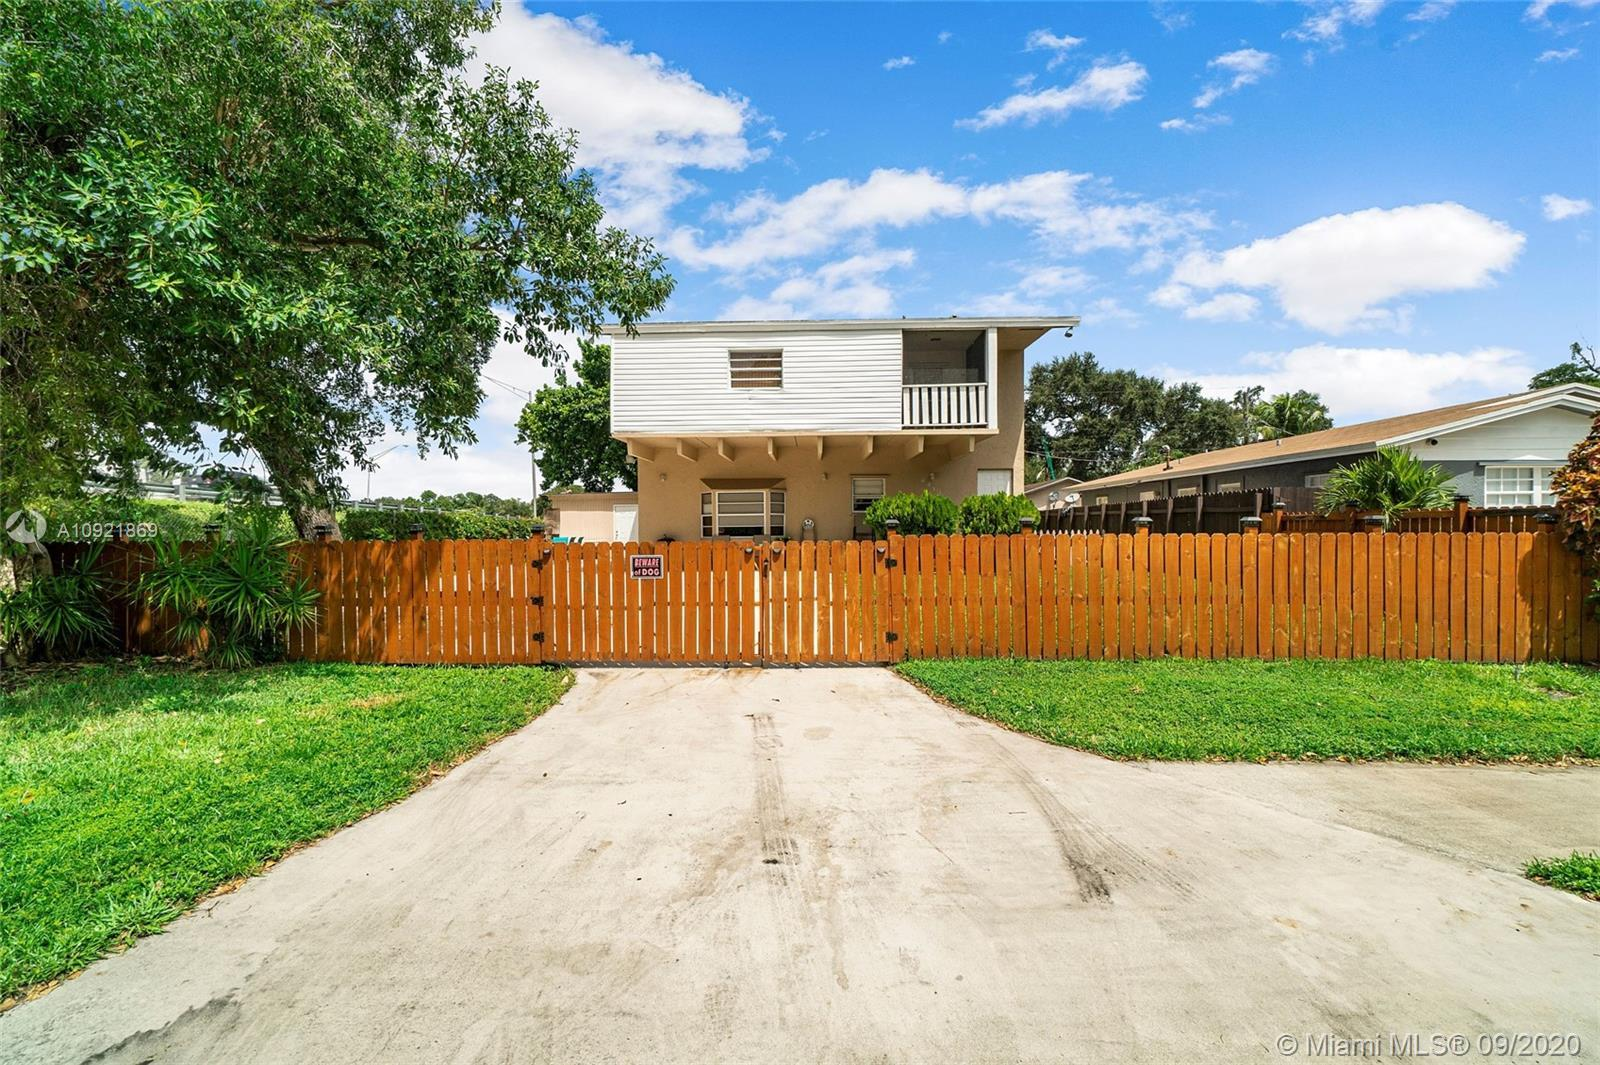 Sellers are Motivated!!! One of the nicest homes available in the area. Minutes away from Hard Rock,